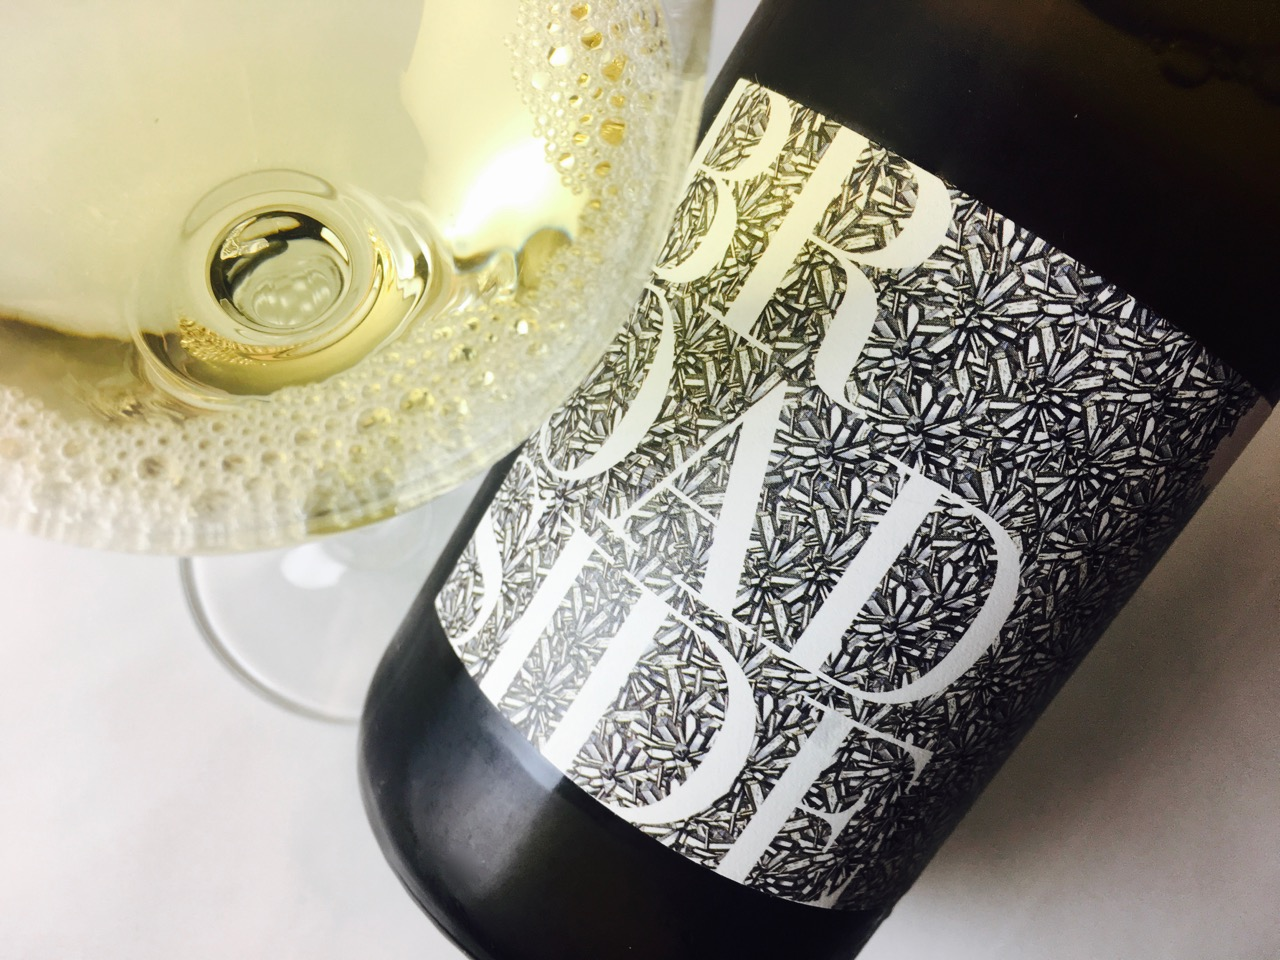 2014 Broadside Chardonnay Wild Ferment Central Coast